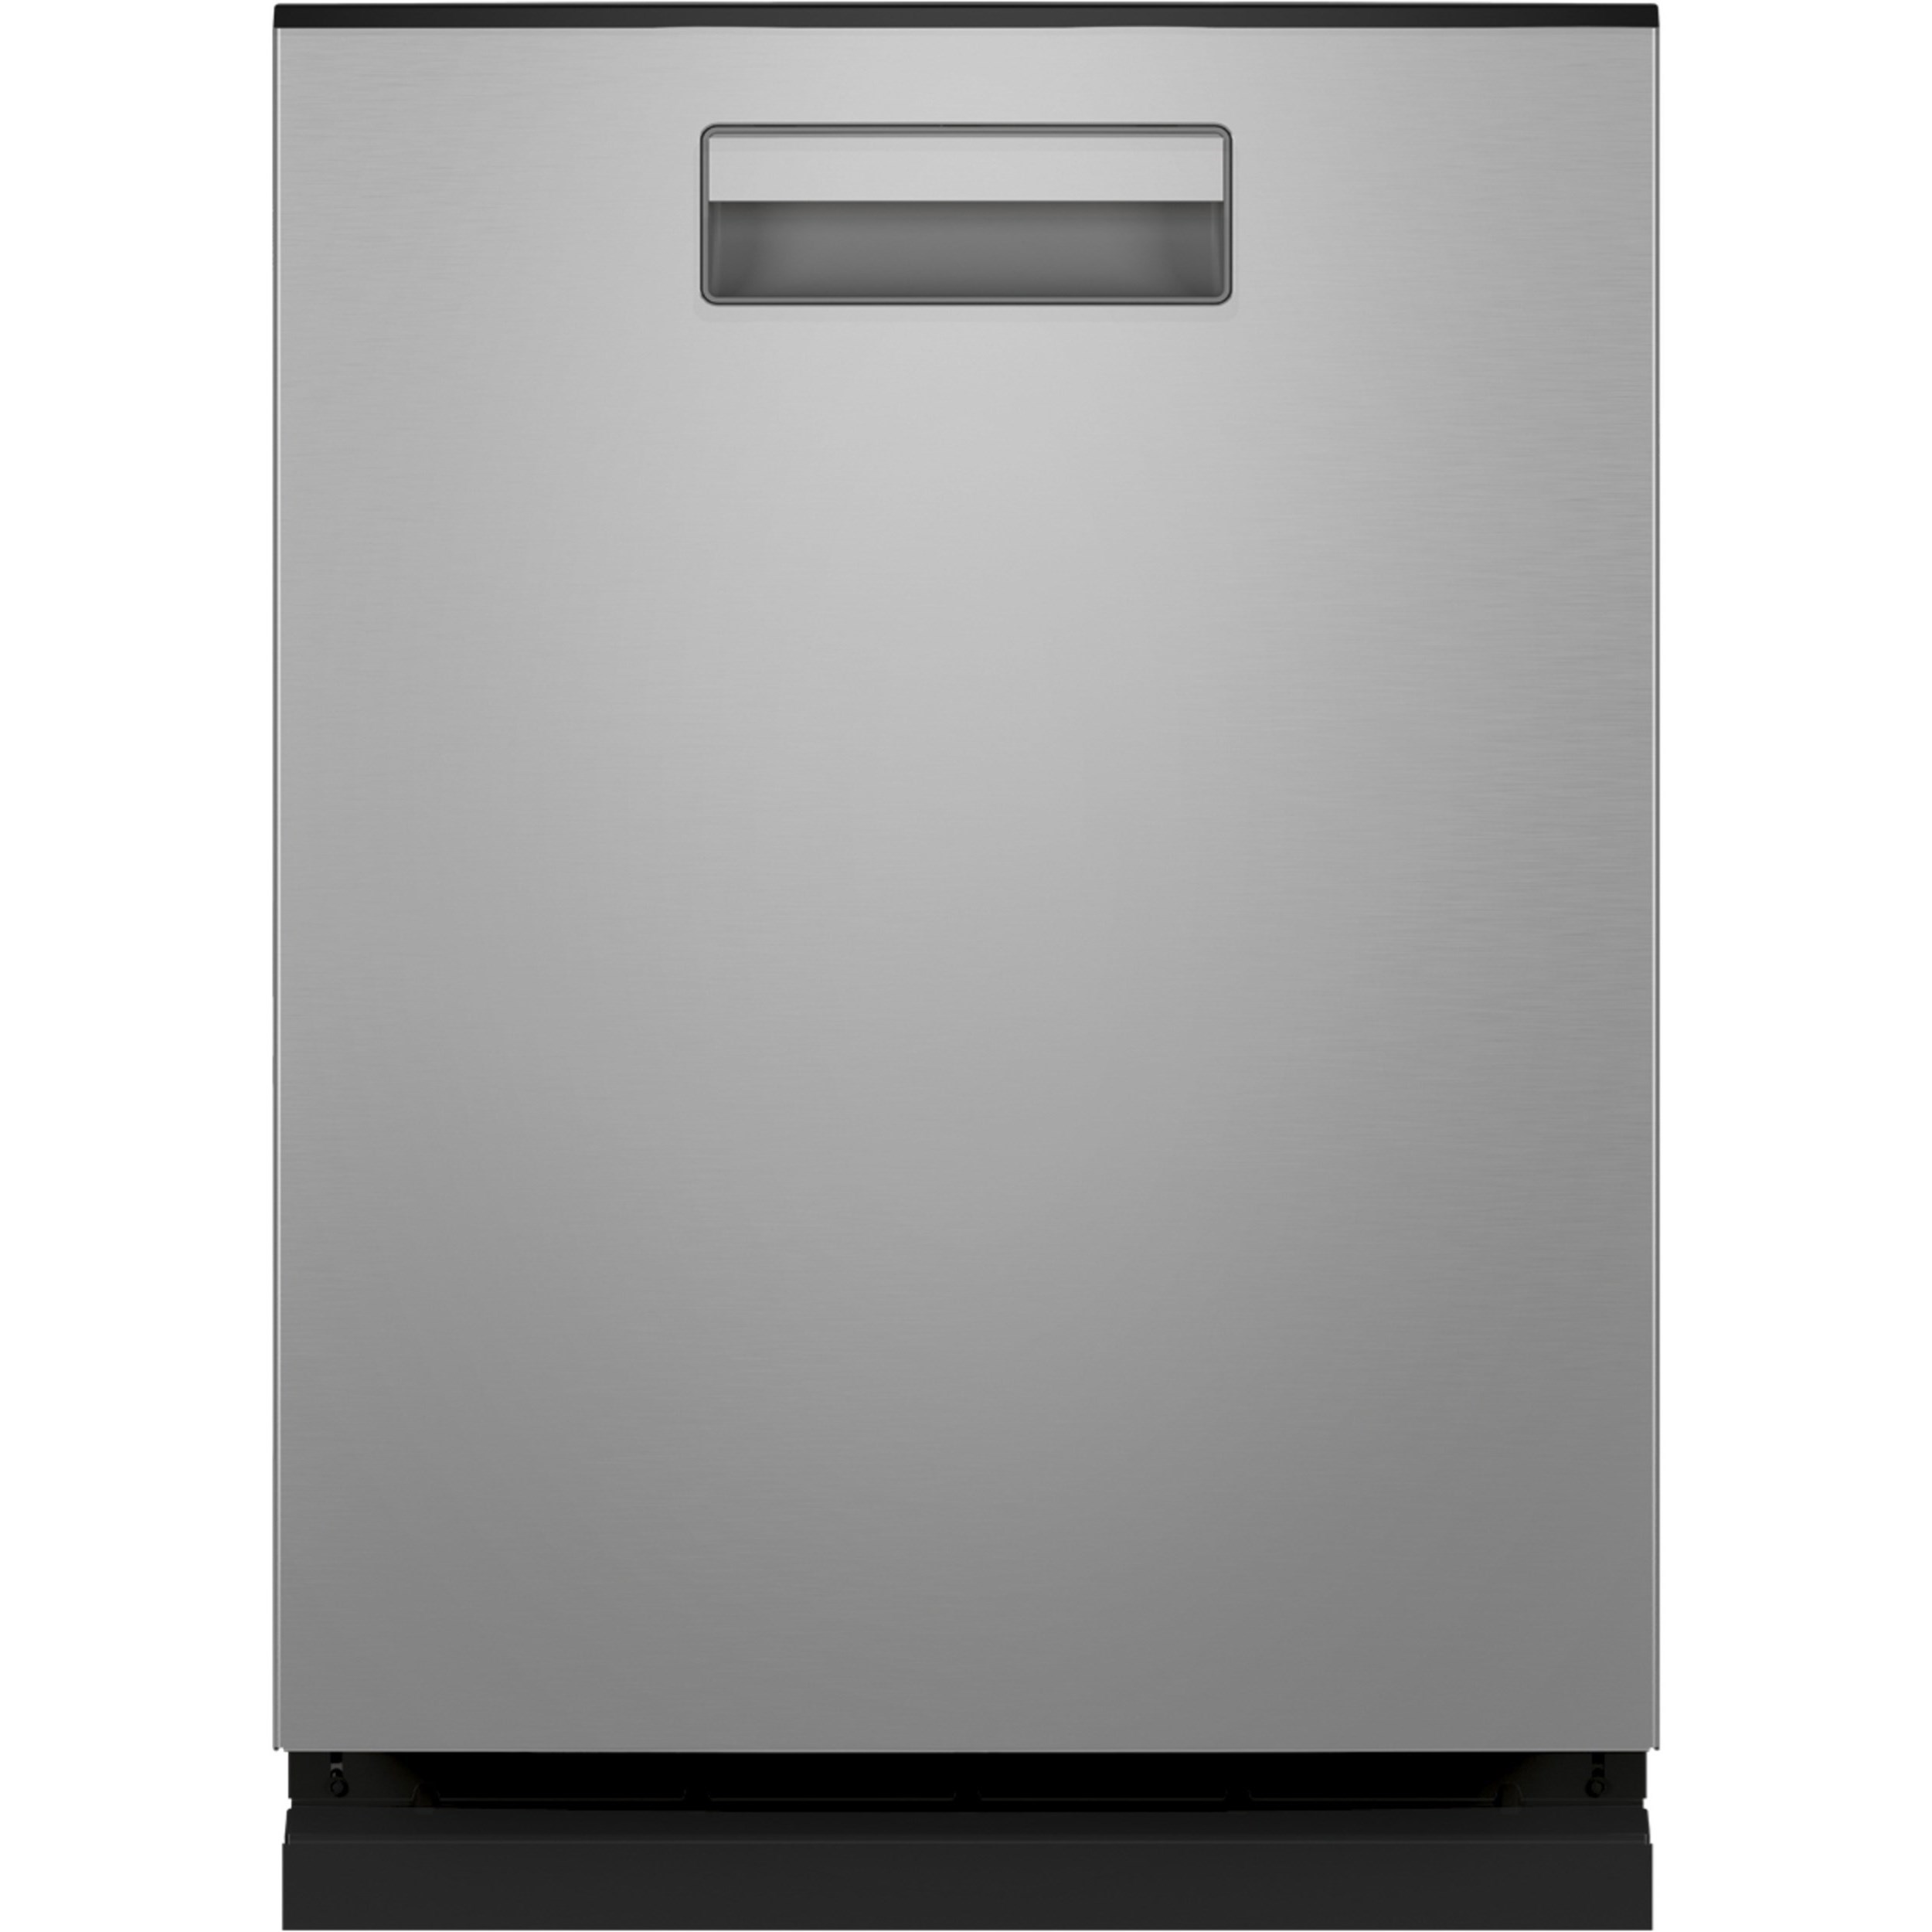 Dishwashers - GE Haier Smart Top Control Dishwasher by GE Appliances at Furniture and ApplianceMart